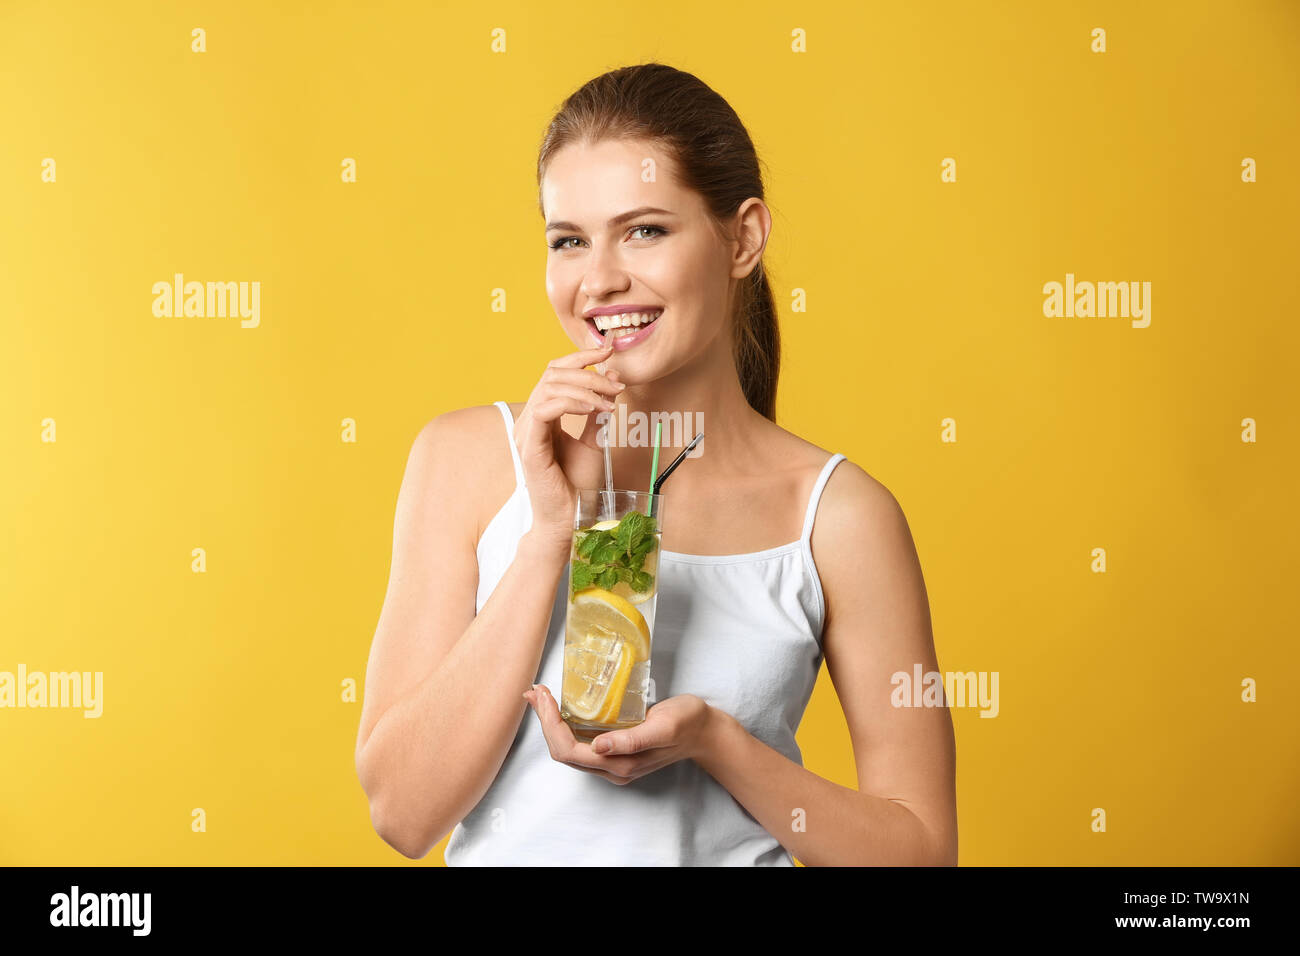 Beautiful young woman drinking lemonade on color background - Stock Image